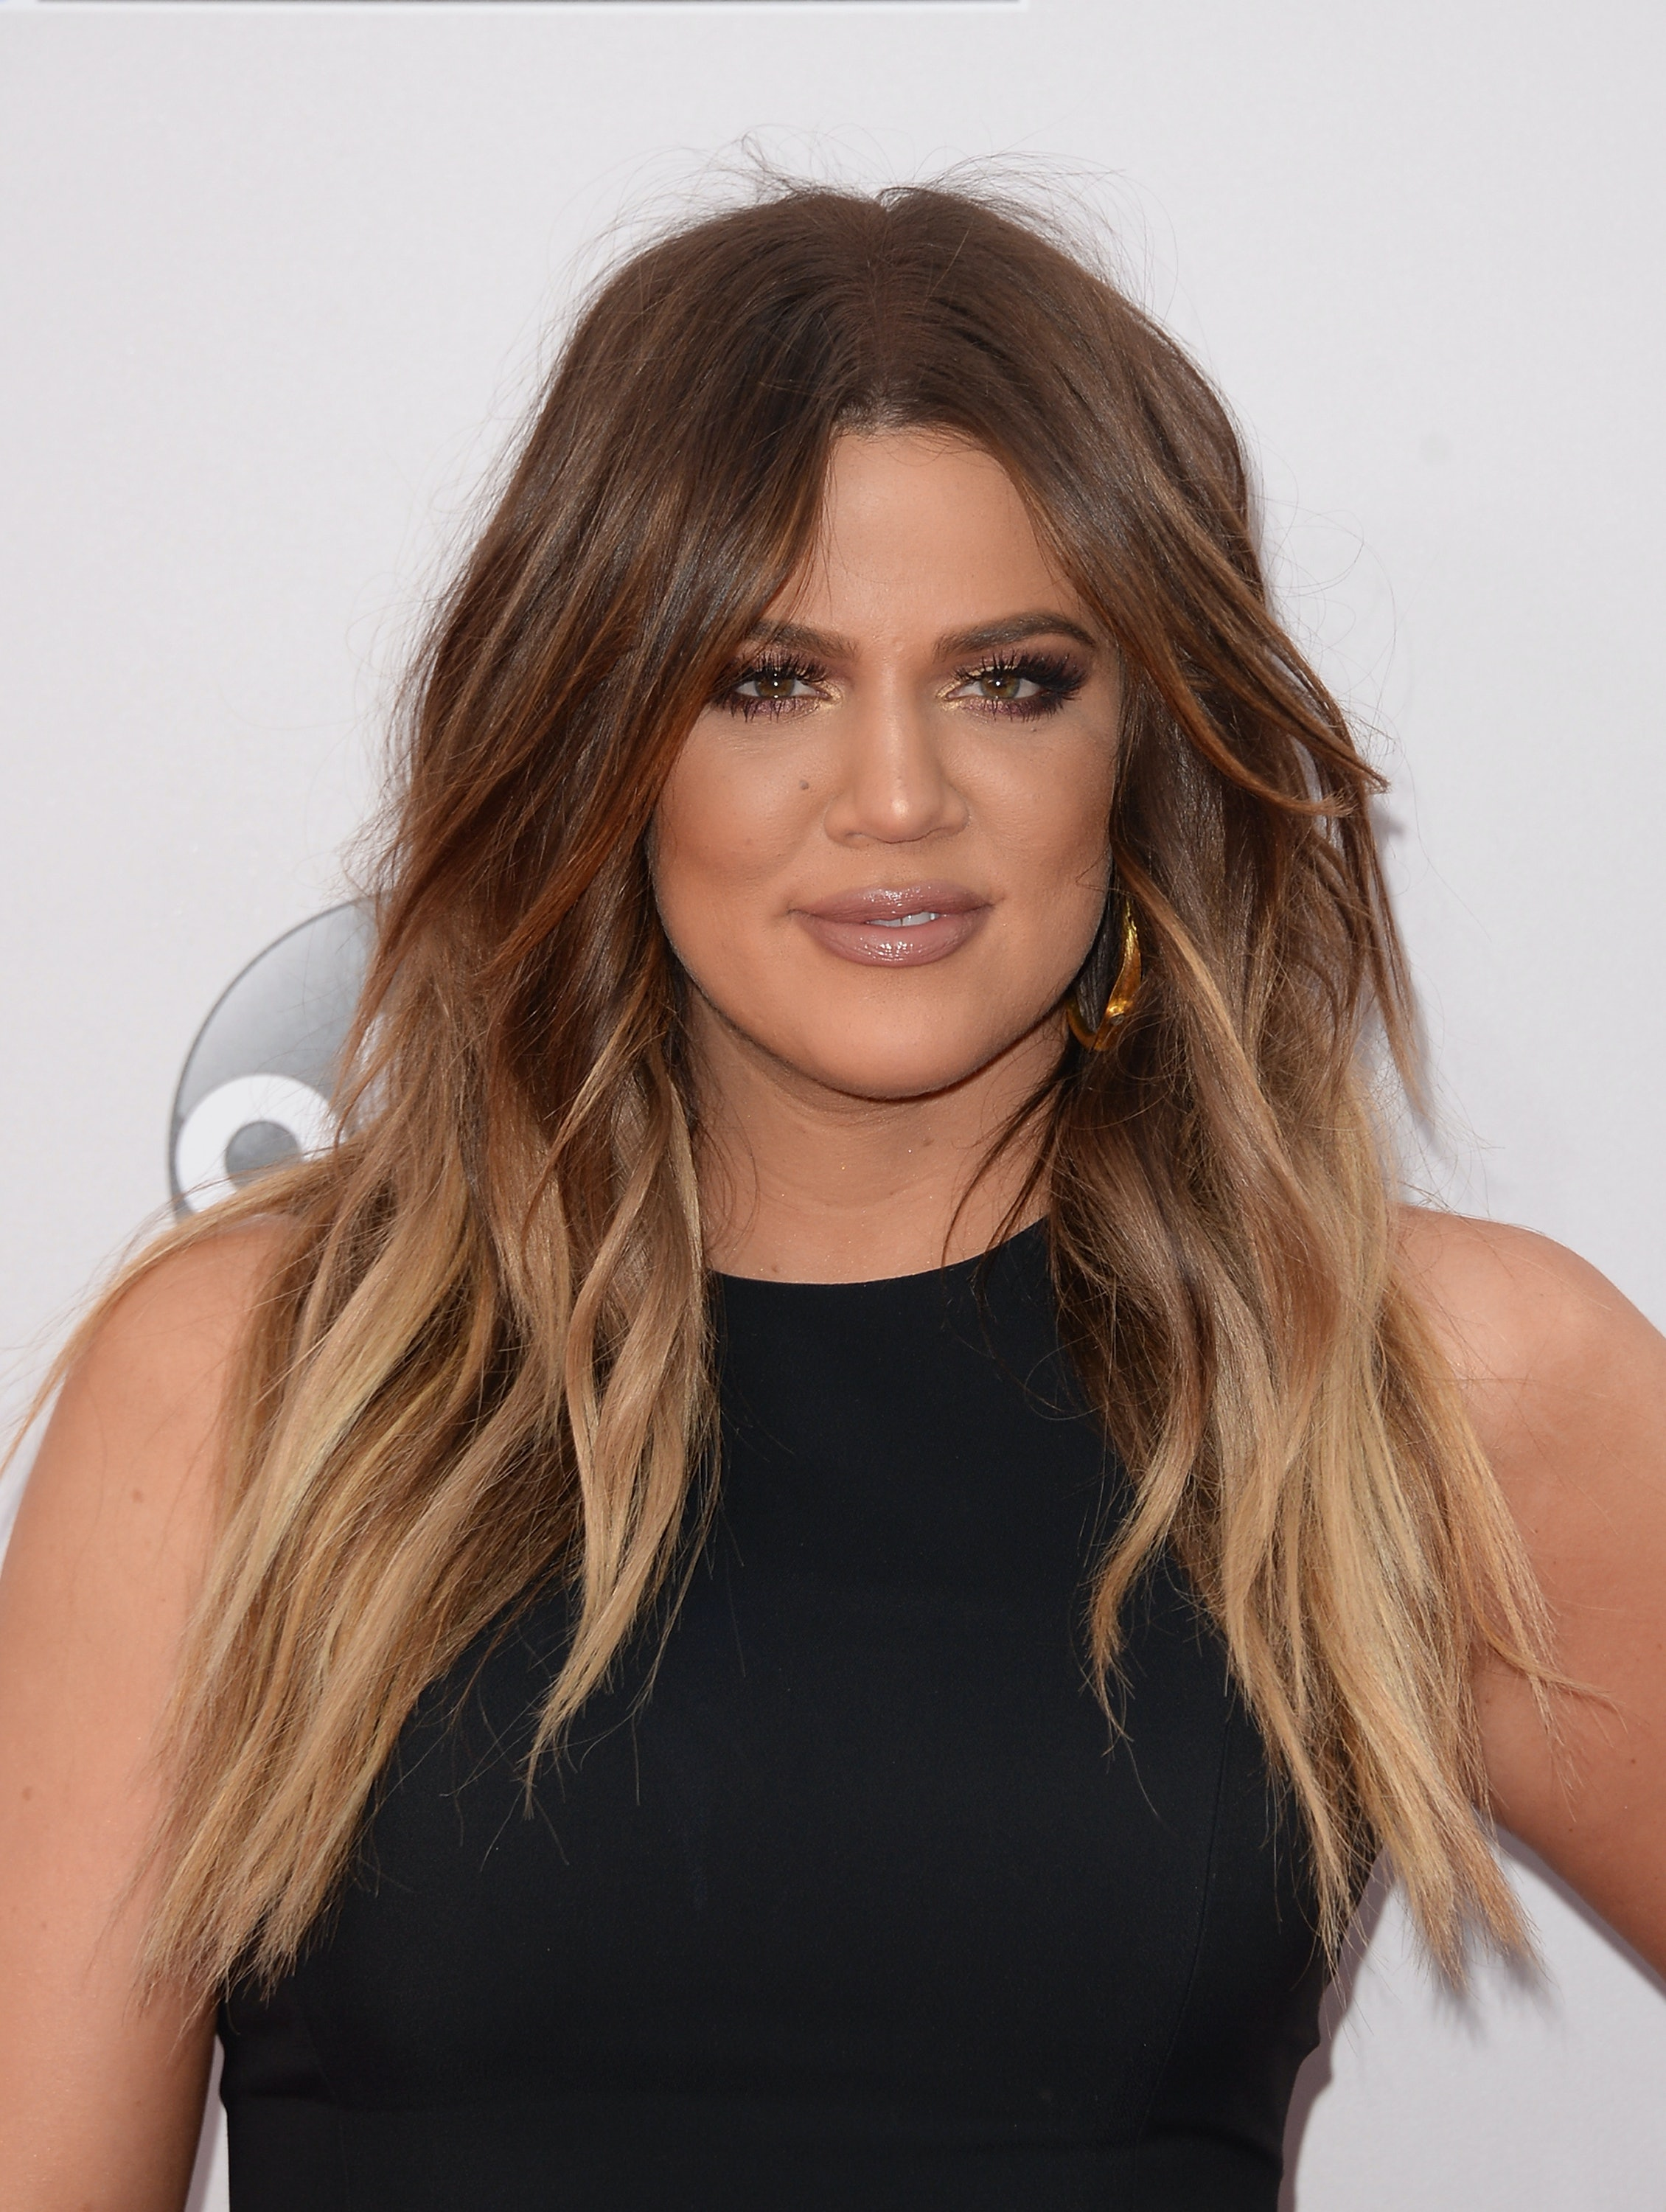 Khloe Kardashians Hair Stylist Reveals What It Takes To Go From